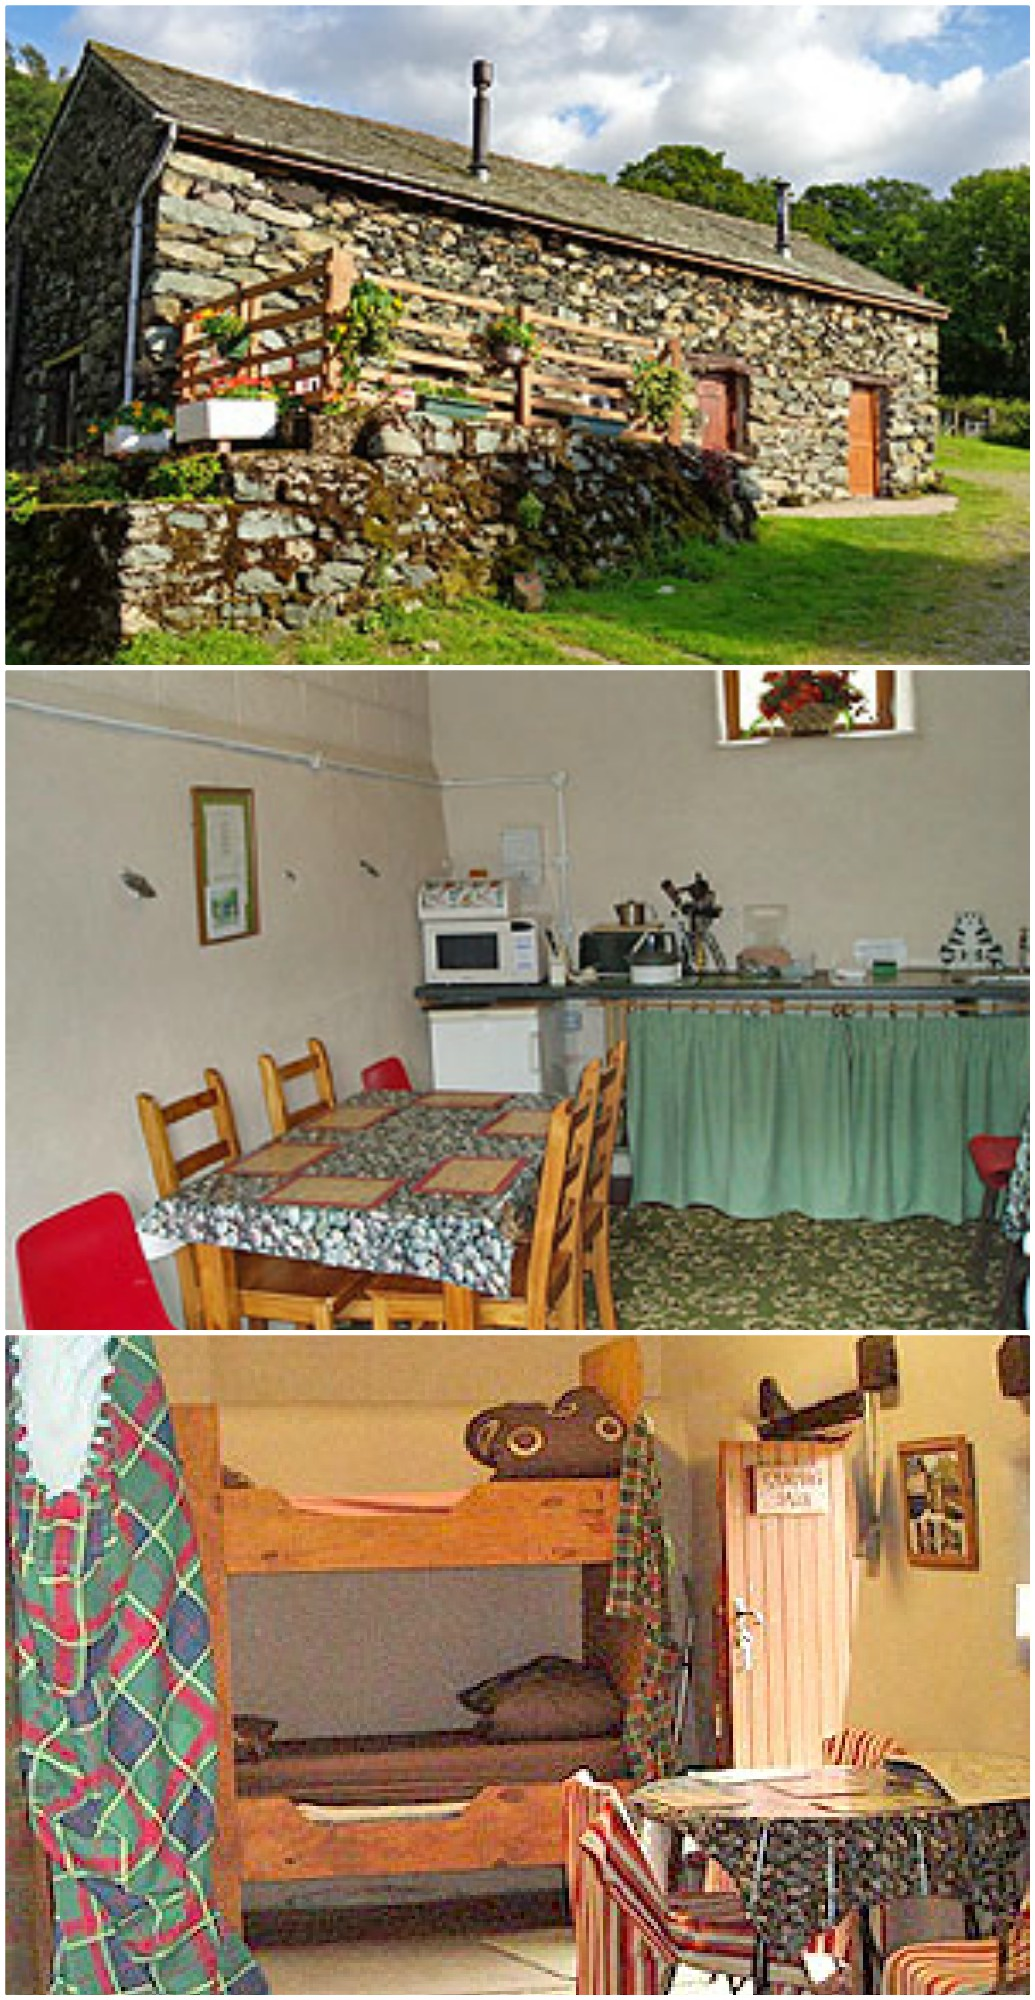 camping barn, can be B & B by request - sleeps 10